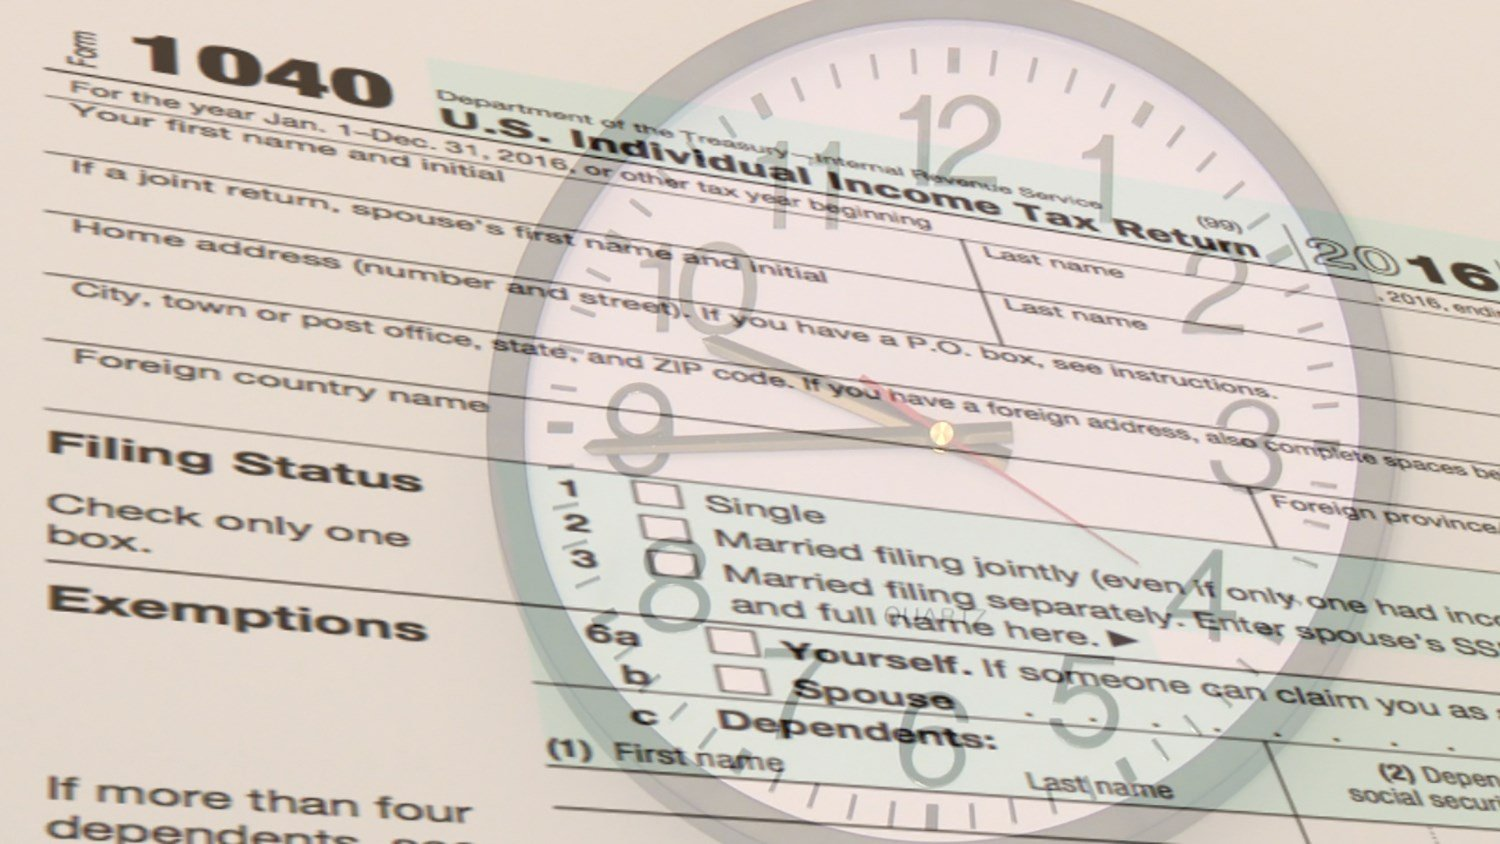 Tuesday is the deadline to file taxes for 2016, but it's also the last chance to file a return for refunds left unclaimed after 2013. Thousands of Arizonans have a share of about $25 million in unclaimed refunds. (Source: Tyler Fingert/Cronkite News)